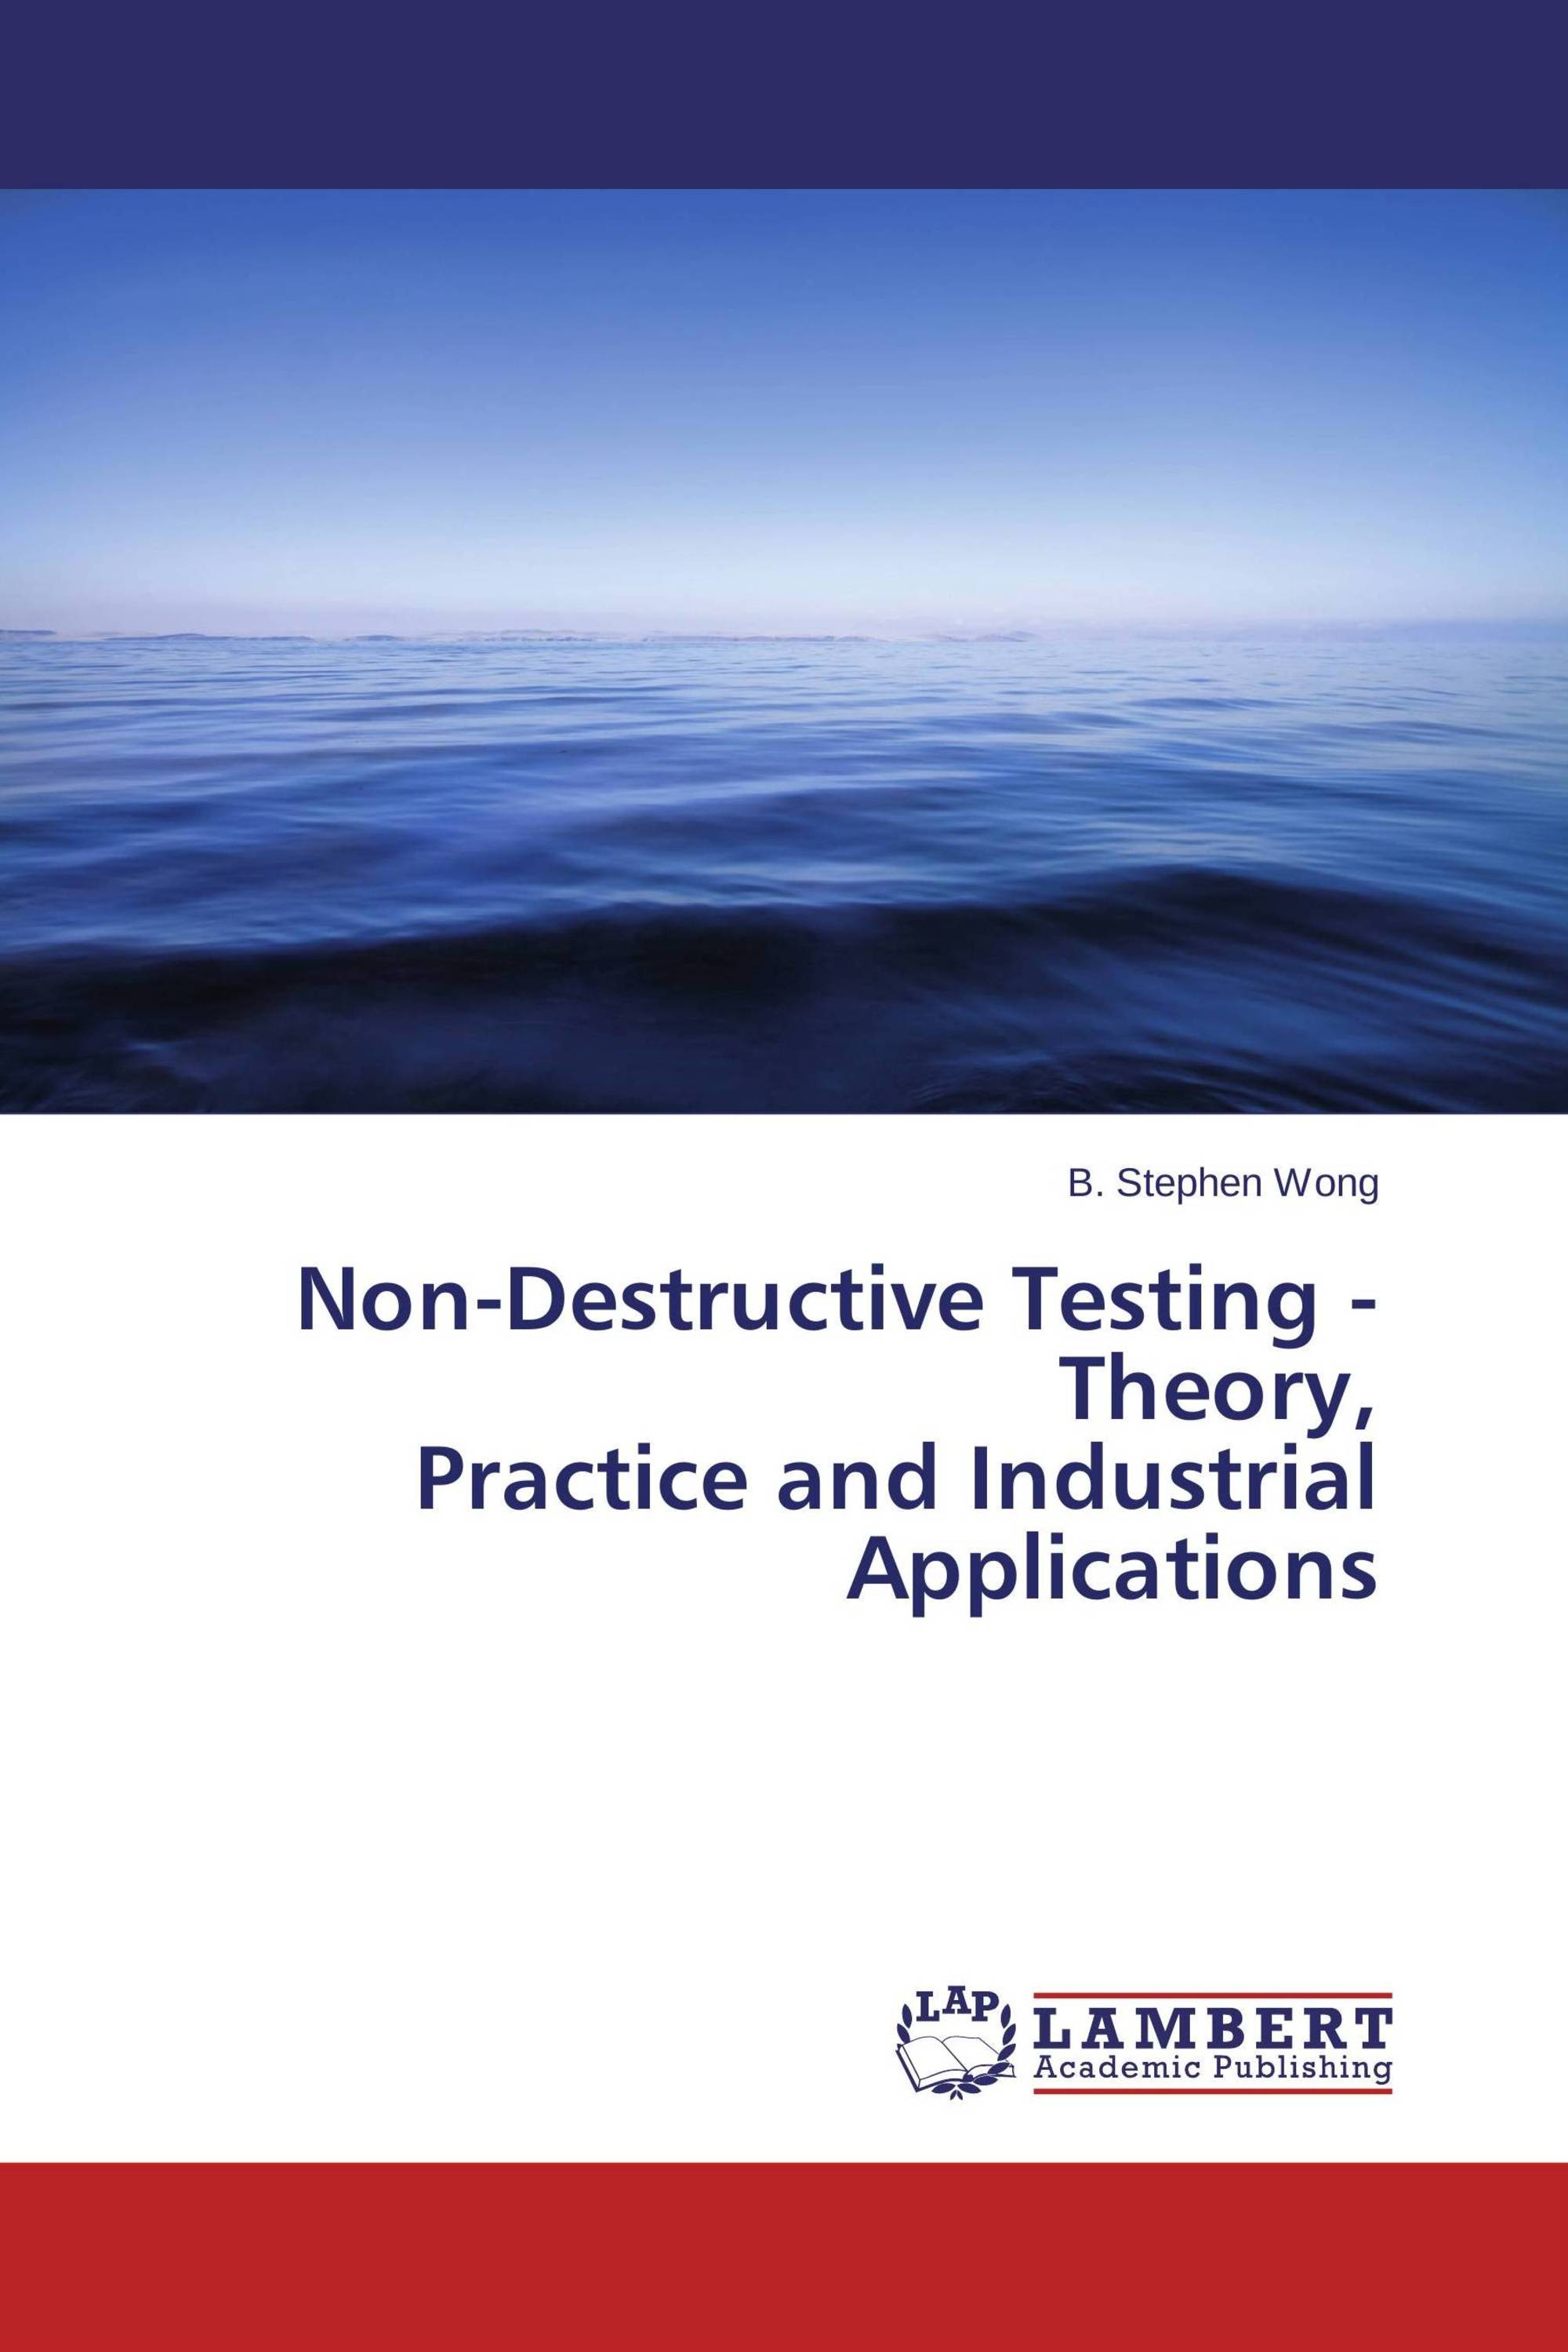 destructive and non destructive testing Non-destructive testing of concrete is a method to obtain the compressive strength and other properties of concrete from the existing structures this test provides immediate results and actual strength and properties of concrete structure the standard method of evaluating the quality of concrete .